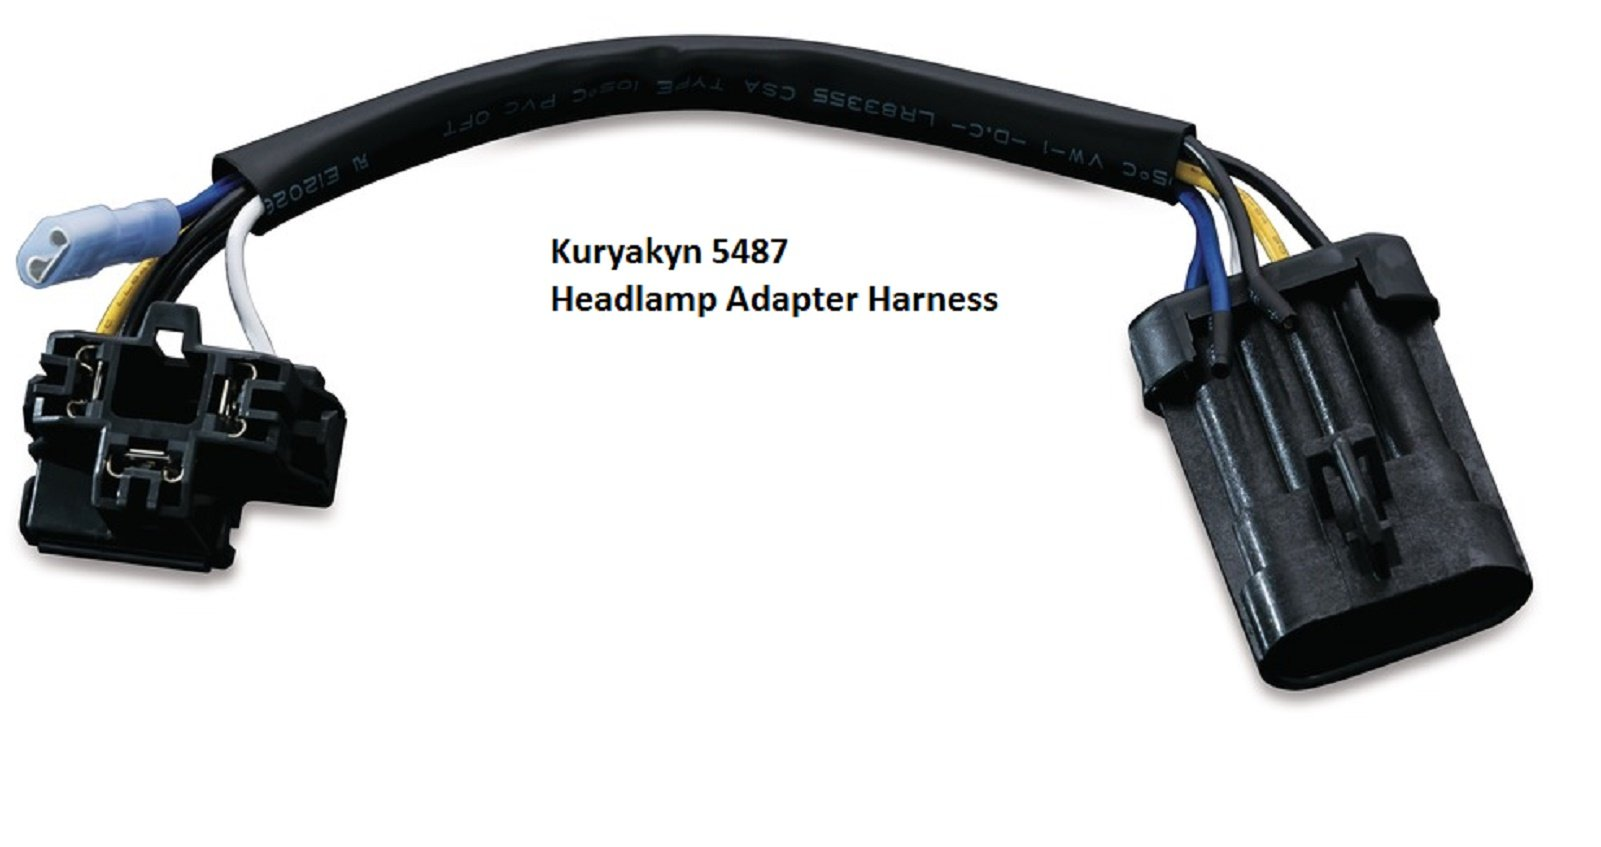 Kuryakyn 5487 Headlamp Adapter Harness